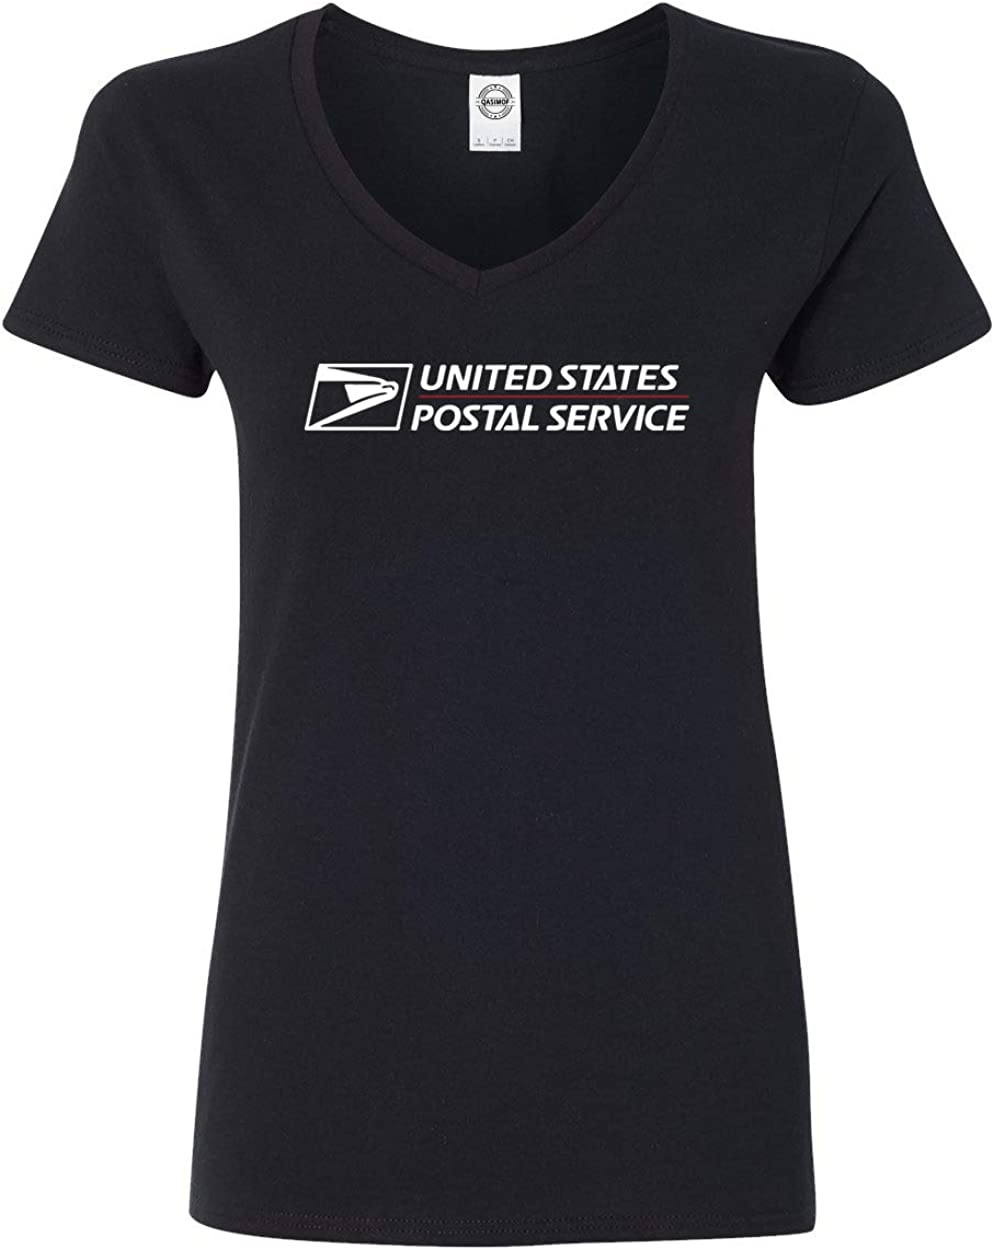 Post Office United States Service Eagle Women's V-Neck T-Shirt